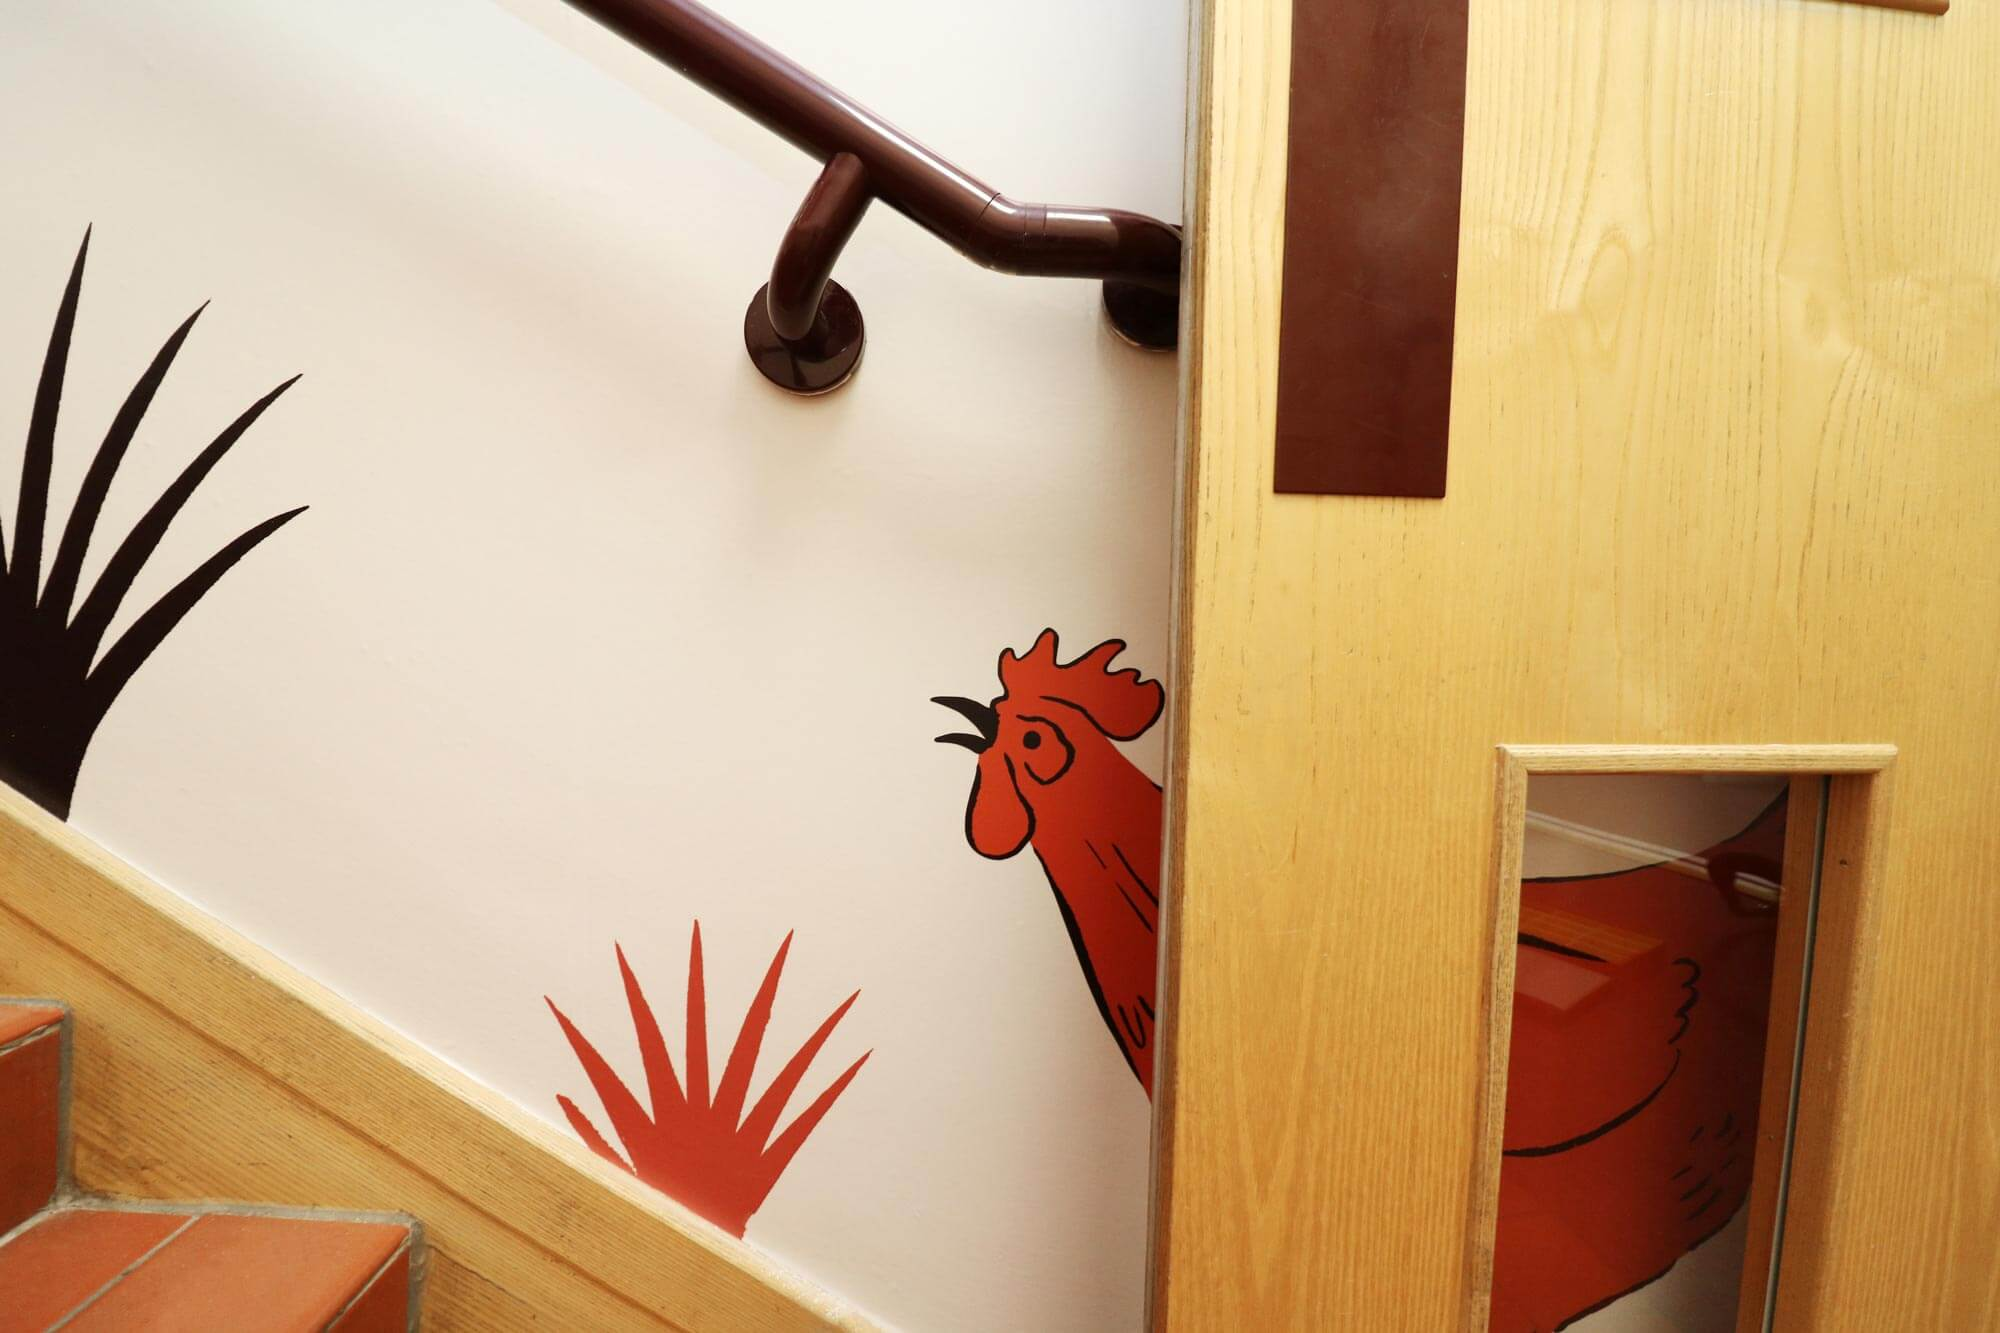 cranmore_case_study_chicken_wallgraphic.jpg